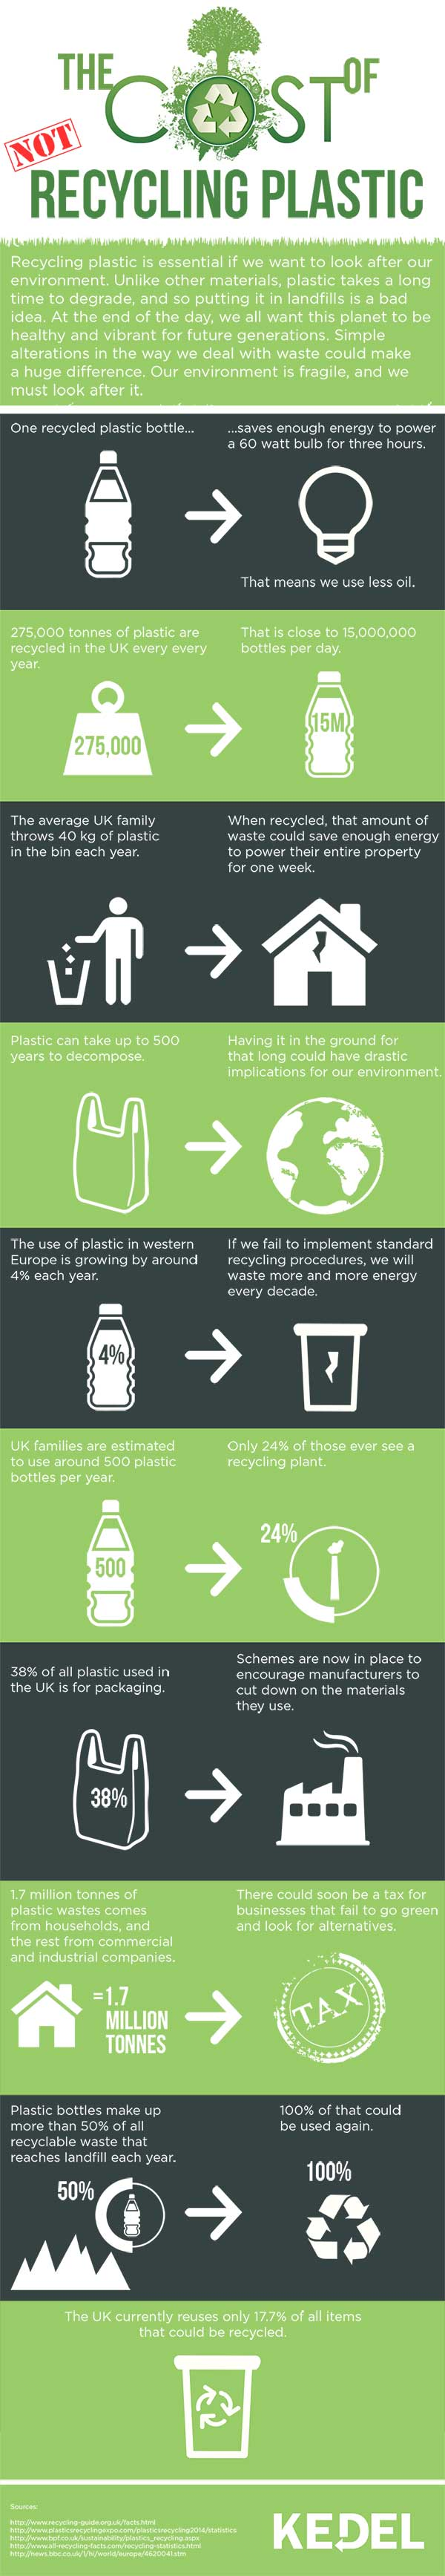 Useful Facts About Recycling UK Plastic Waste - Educational Graphic